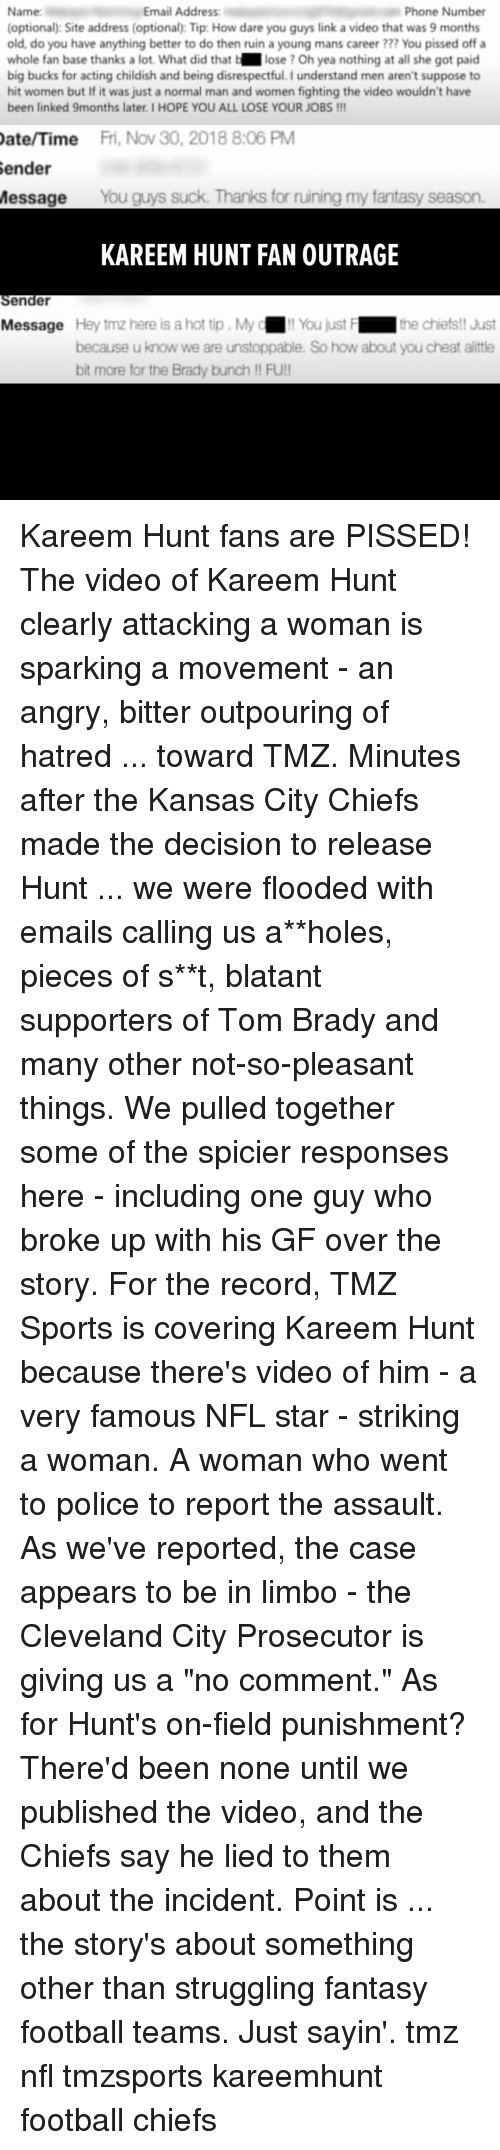 "tmz sports: Email Address  Phone Number  Name:  (optional): Site address (optional): Tip: How dare you guys link a video that was 9 months  old, do you have anything better to do then ruin a young mans career ??? You pissed off a  whole fan base thanks a lot. What did that b lose ? Oh yea nothing at all she got paid  big bucks for acting childish and being disrespectful.I understand men aren't suppose to  hit women but If it was just a normal man and women fighting the video wouldn't have  been linked 9months later. I HOPE YOU ALL LOSE YOUR JOBS!!  ate/Time  Fri, Nov 30, 2018 8:06 PM  ender  Message You guys suck. Thanks for ruining my fantasy season.  KAREEM HUNT FAN OUTRAGE  Sender  Message Hey tmz here is a hot tip. My  !! You just F  the chiets!! Just  because u know we are unstoppable. So how about you cheat allttle  bit more for the Brady bunch !! FU! Kareem Hunt fans are PISSED! The video of Kareem Hunt clearly attacking a woman is sparking a movement - an angry, bitter outpouring of hatred ... toward TMZ. Minutes after the Kansas City Chiefs made the decision to release Hunt ... we were flooded with emails calling us a**holes, pieces of s**t, blatant supporters of Tom Brady and many other not-so-pleasant things. We pulled together some of the spicier responses here - including one guy who broke up with his GF over the story. For the record, TMZ Sports is covering Kareem Hunt because there's video of him - a very famous NFL star - striking a woman. A woman who went to police to report the assault. As we've reported, the case appears to be in limbo - the Cleveland City Prosecutor is giving us a ""no comment."" As for Hunt's on-field punishment? There'd been none until we published the video, and the Chiefs say he lied to them about the incident. Point is ... the story's about something other than struggling fantasy football teams. Just sayin'. tmz nfl tmzsports kareemhunt football chiefs"